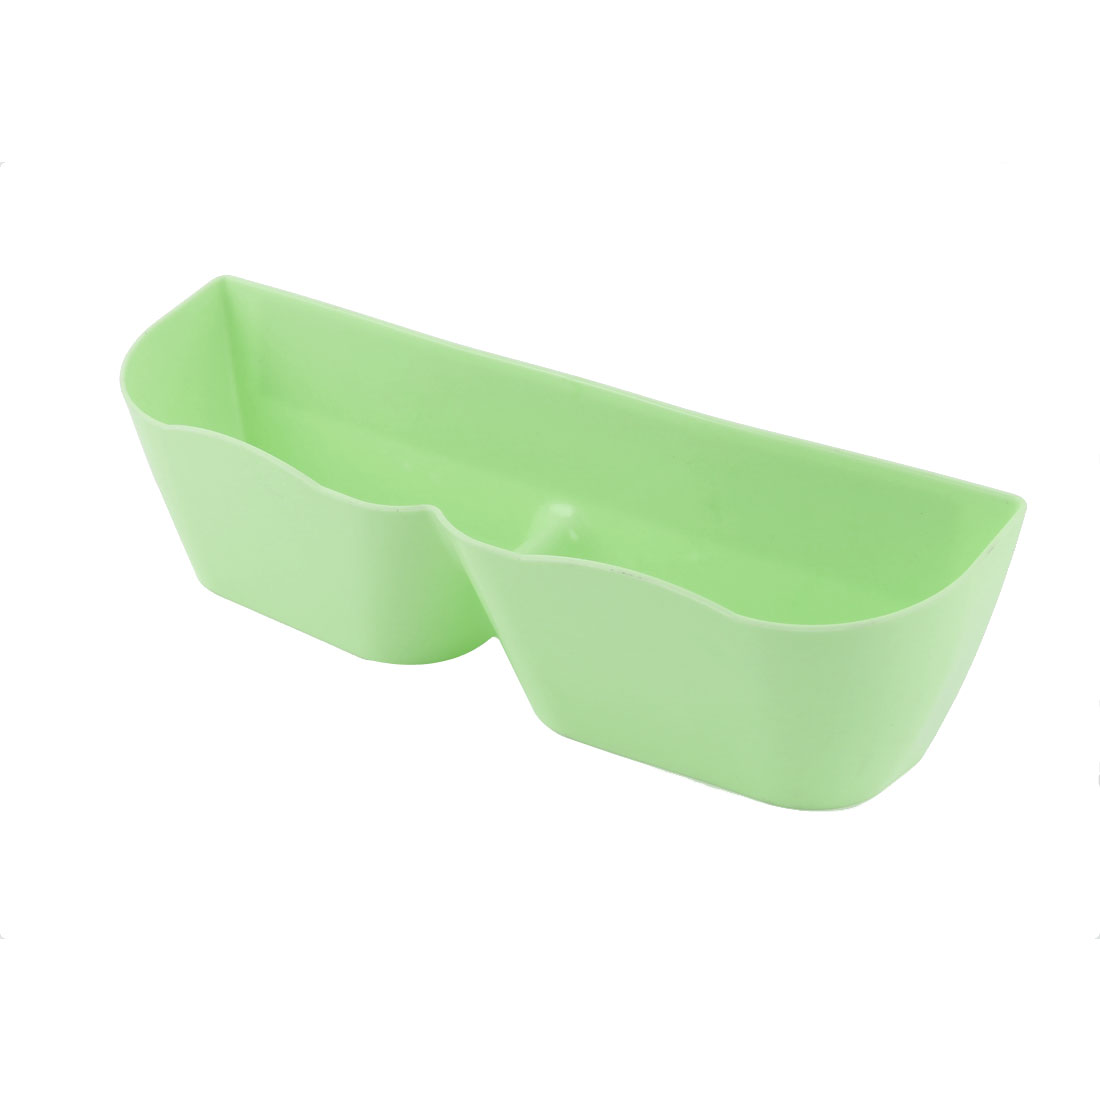 Home Plastic Wall Mounting Shoes Slippers Holder Rack Storage Organiser Green